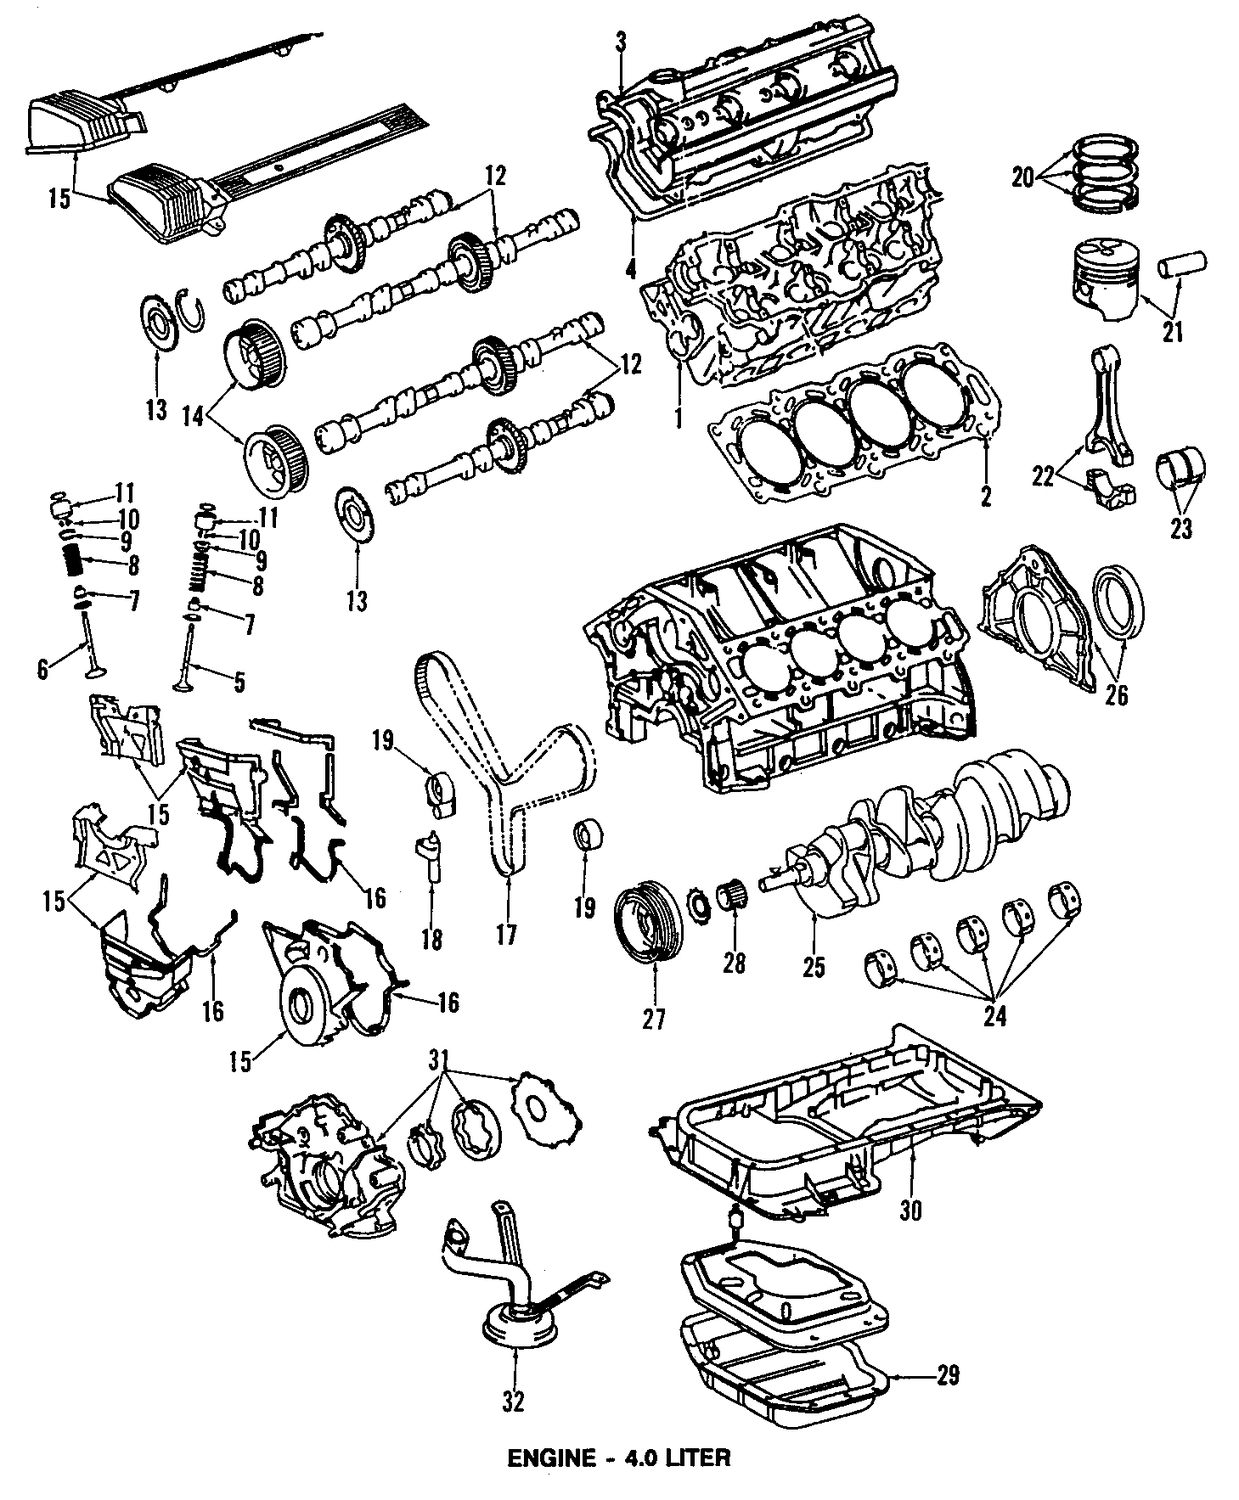 Browse a Sub Category to buy Parts from - Jm Lexus | parts.jmlexus.com